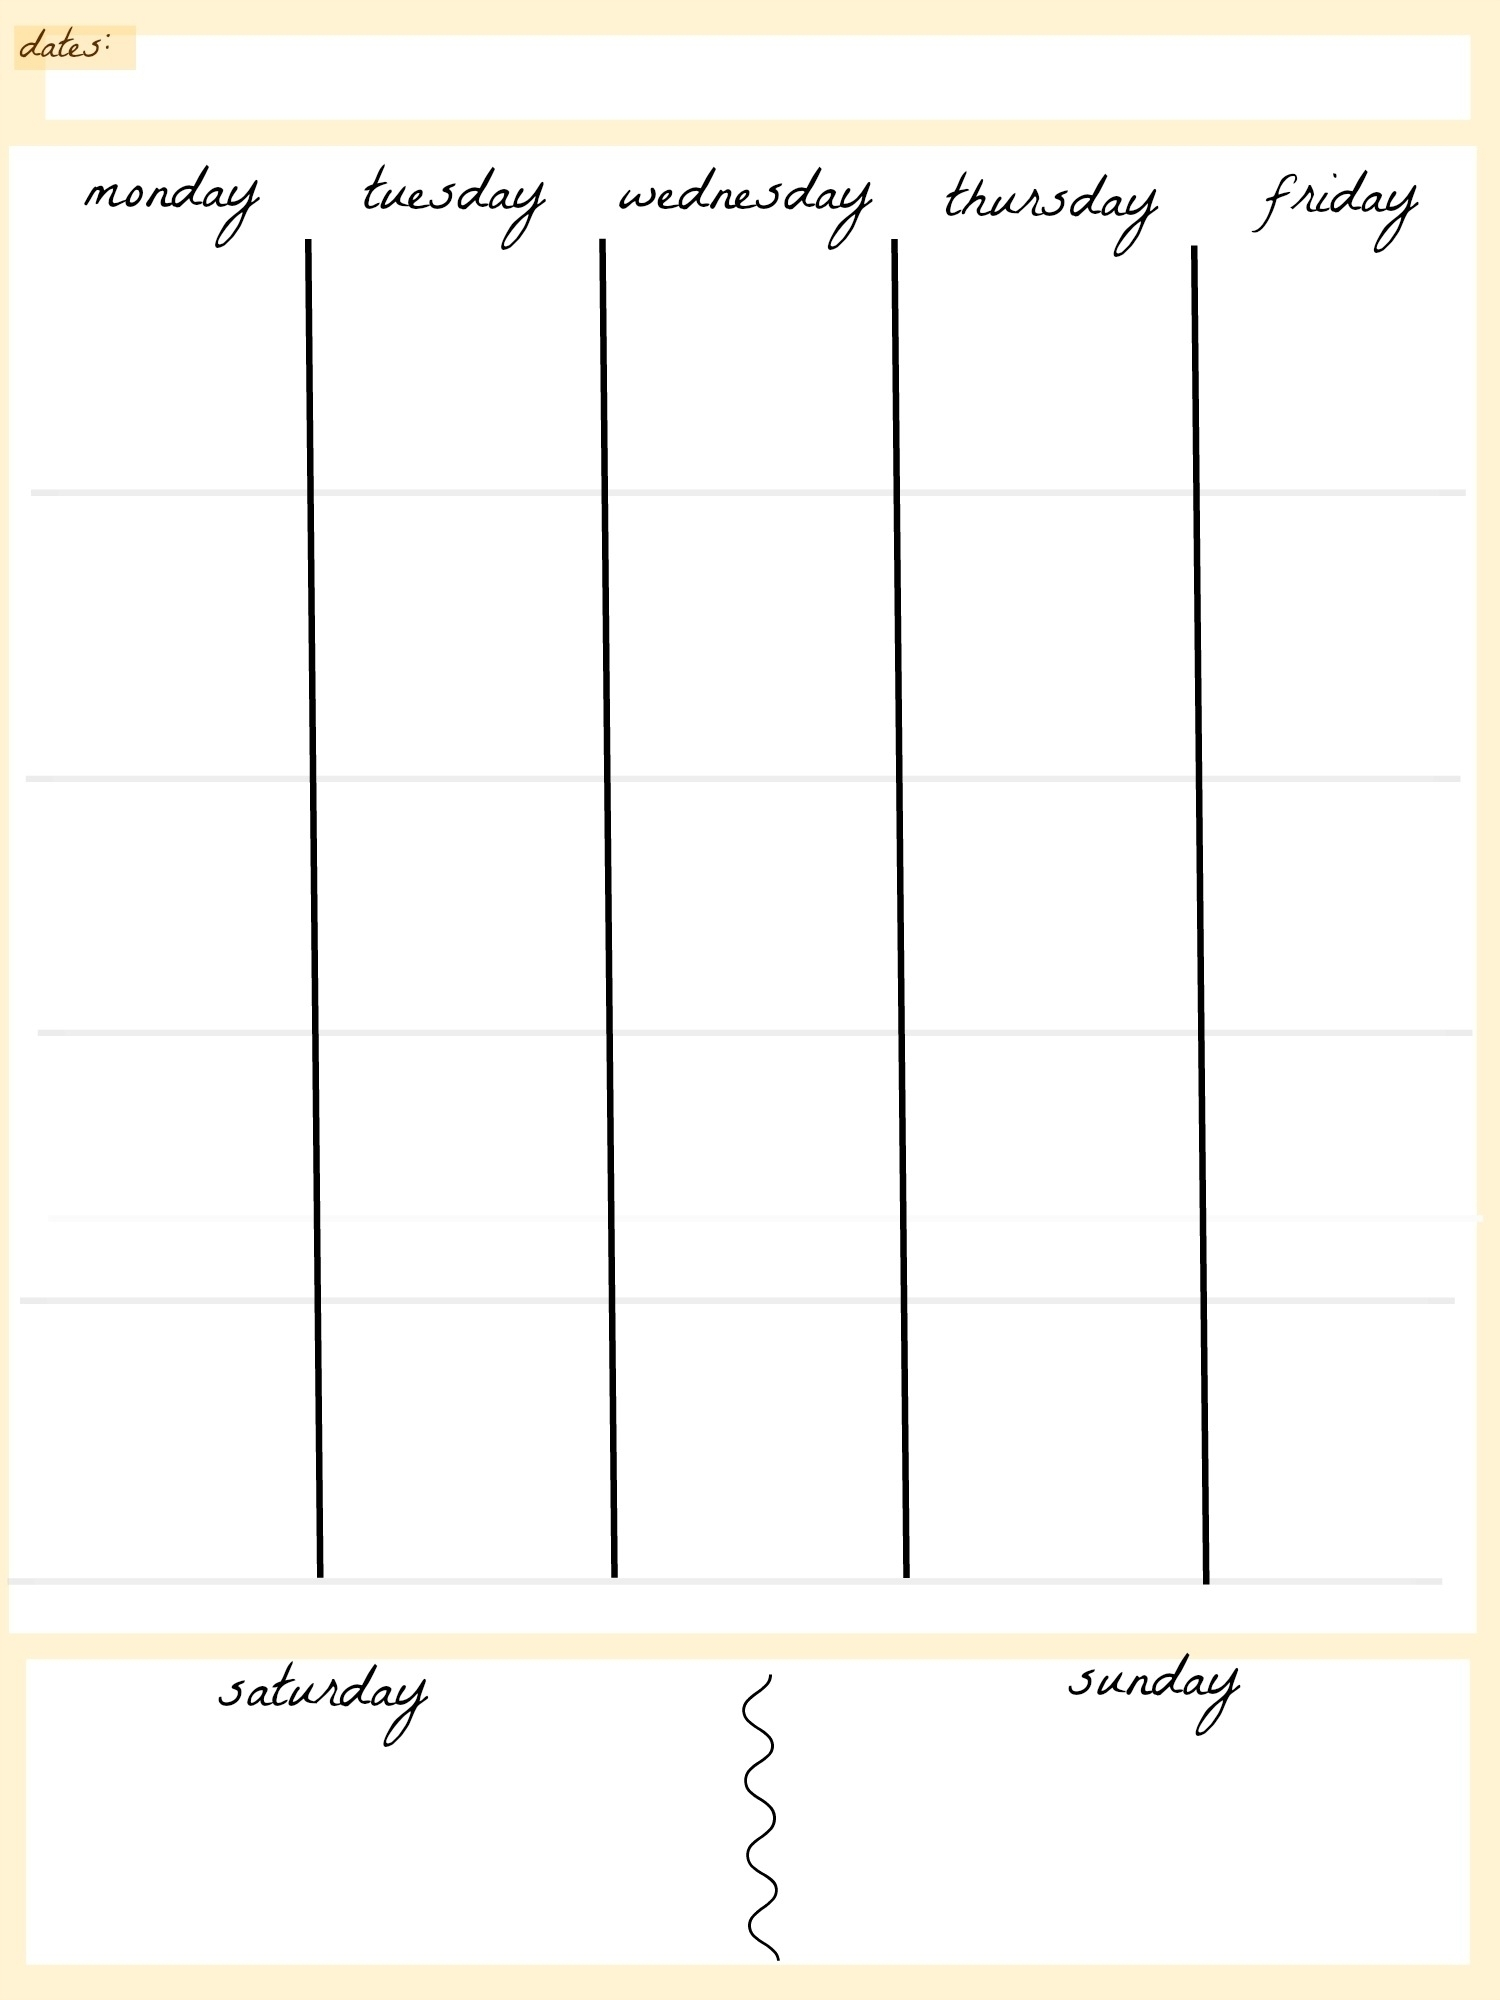 Images Of Days Of The Week Calendar For One Month | Template with regard to Blank Days Of The Week Calendar